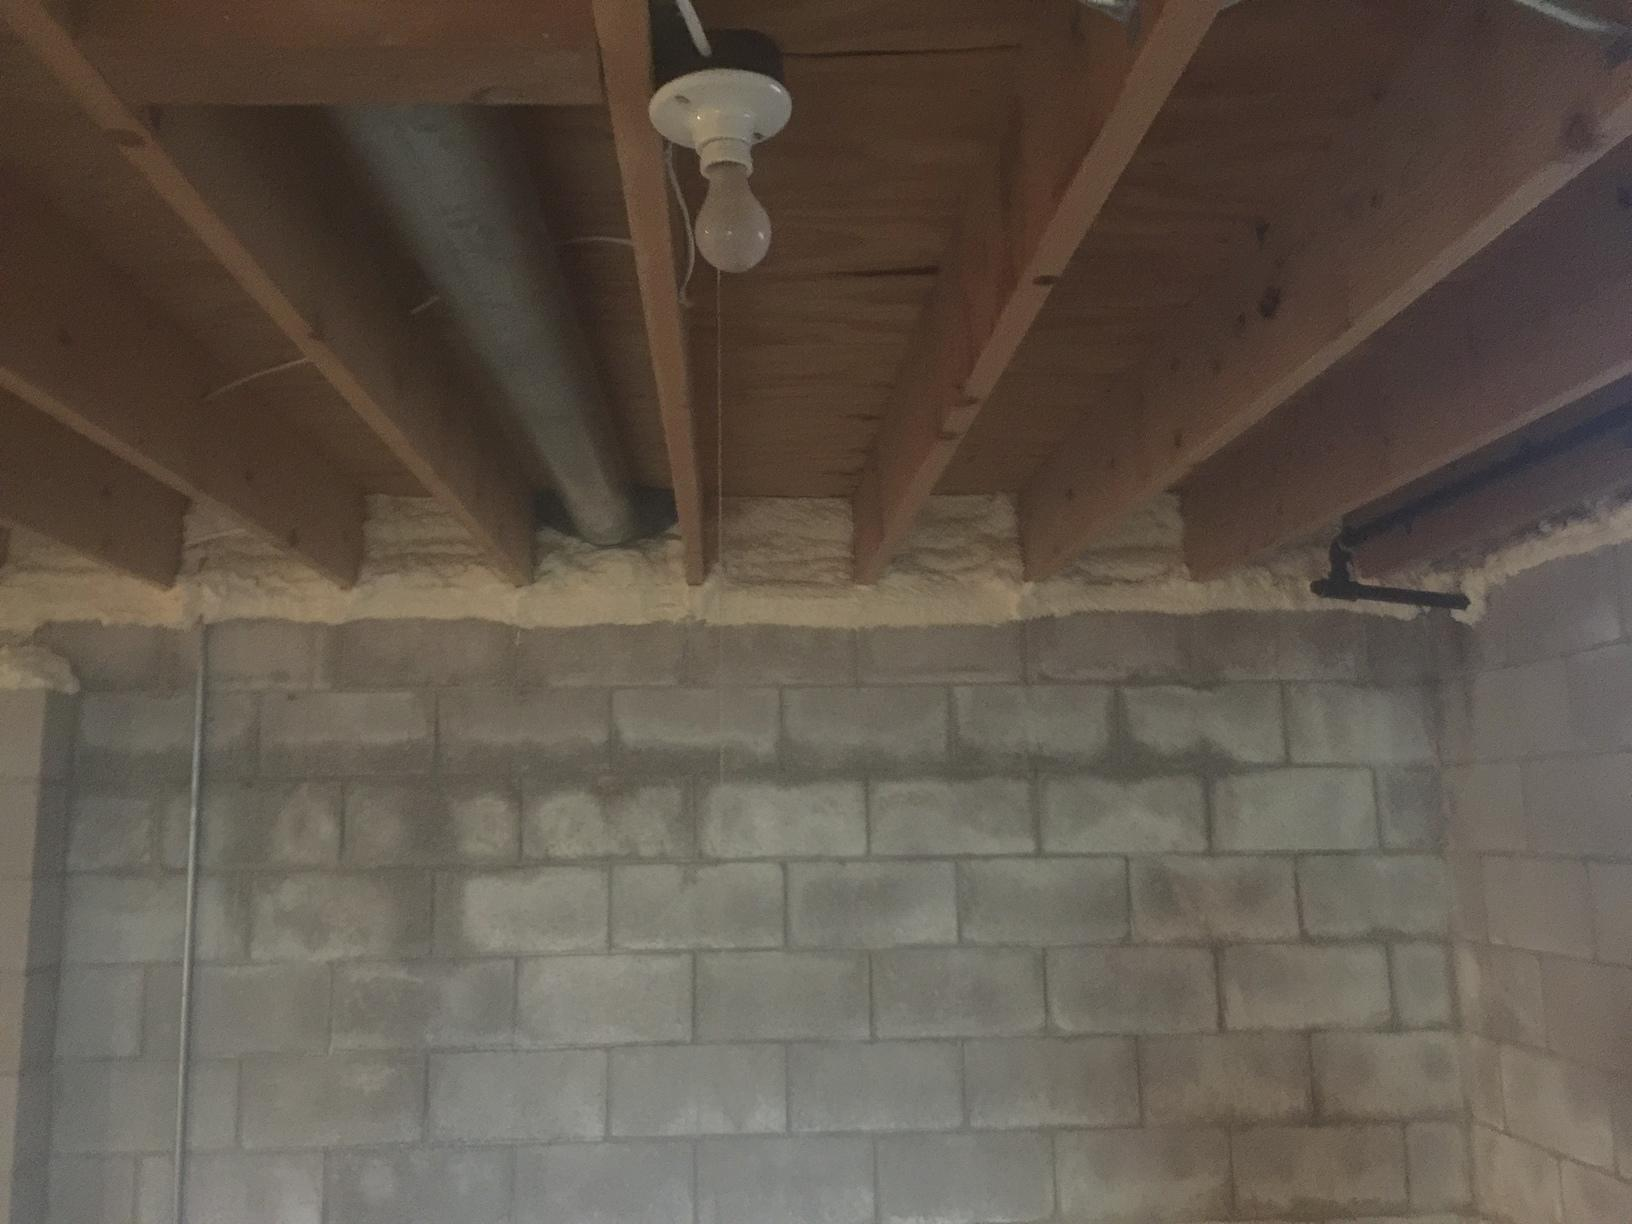 Air Sealing Basement Rim Joists in Brillion, WI - After Photo